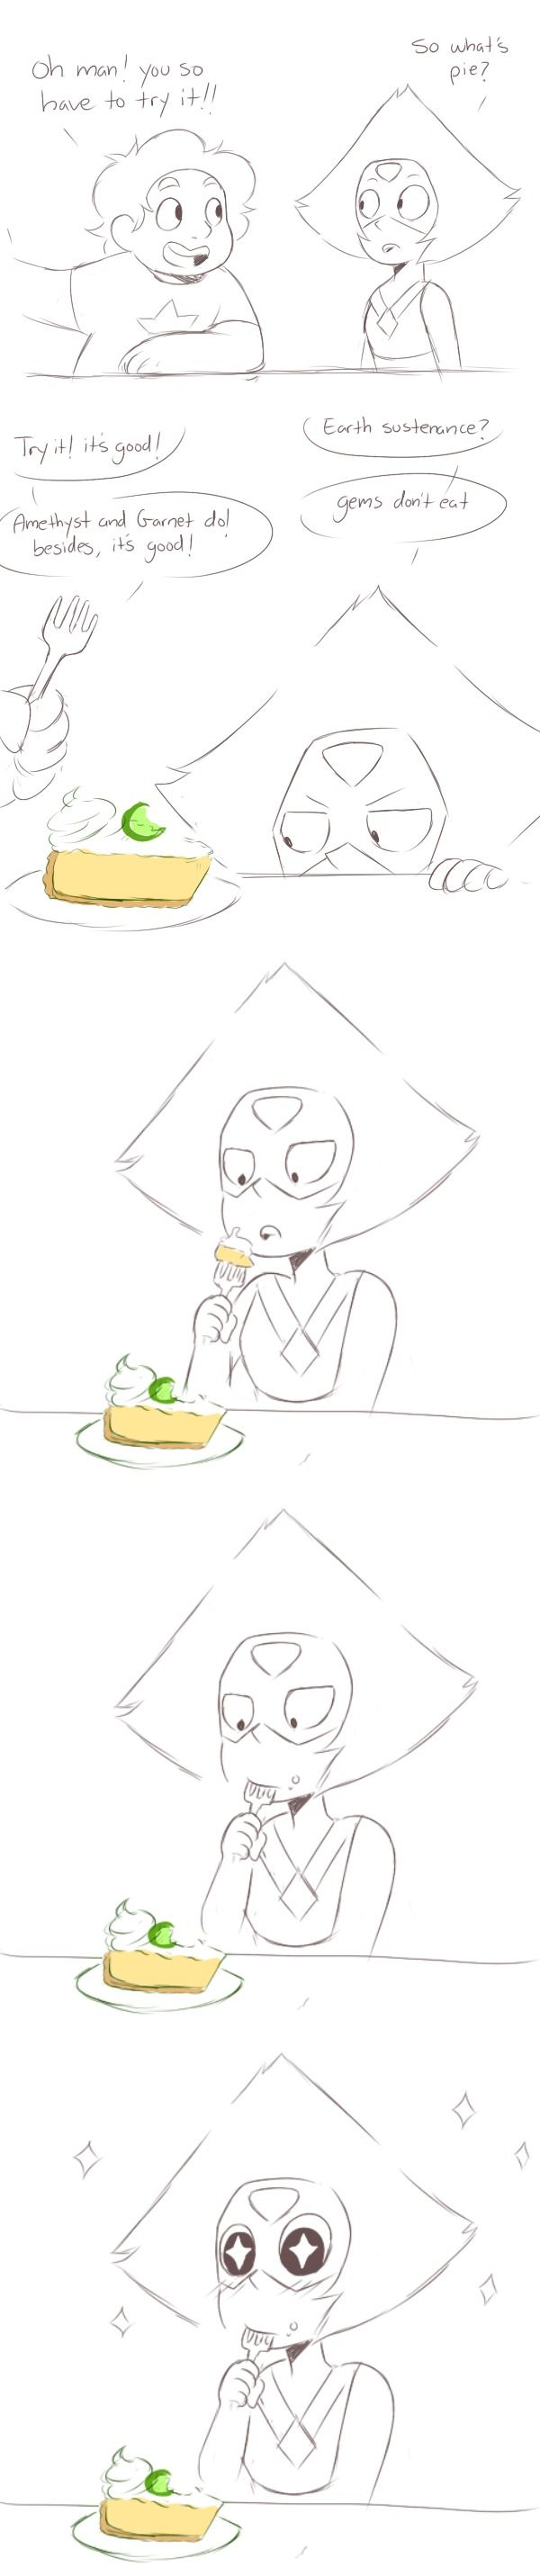 Peridot... I love that the artist chose key lime pie, it represents  Peridot well- both coloring and personality flavor.... deep!